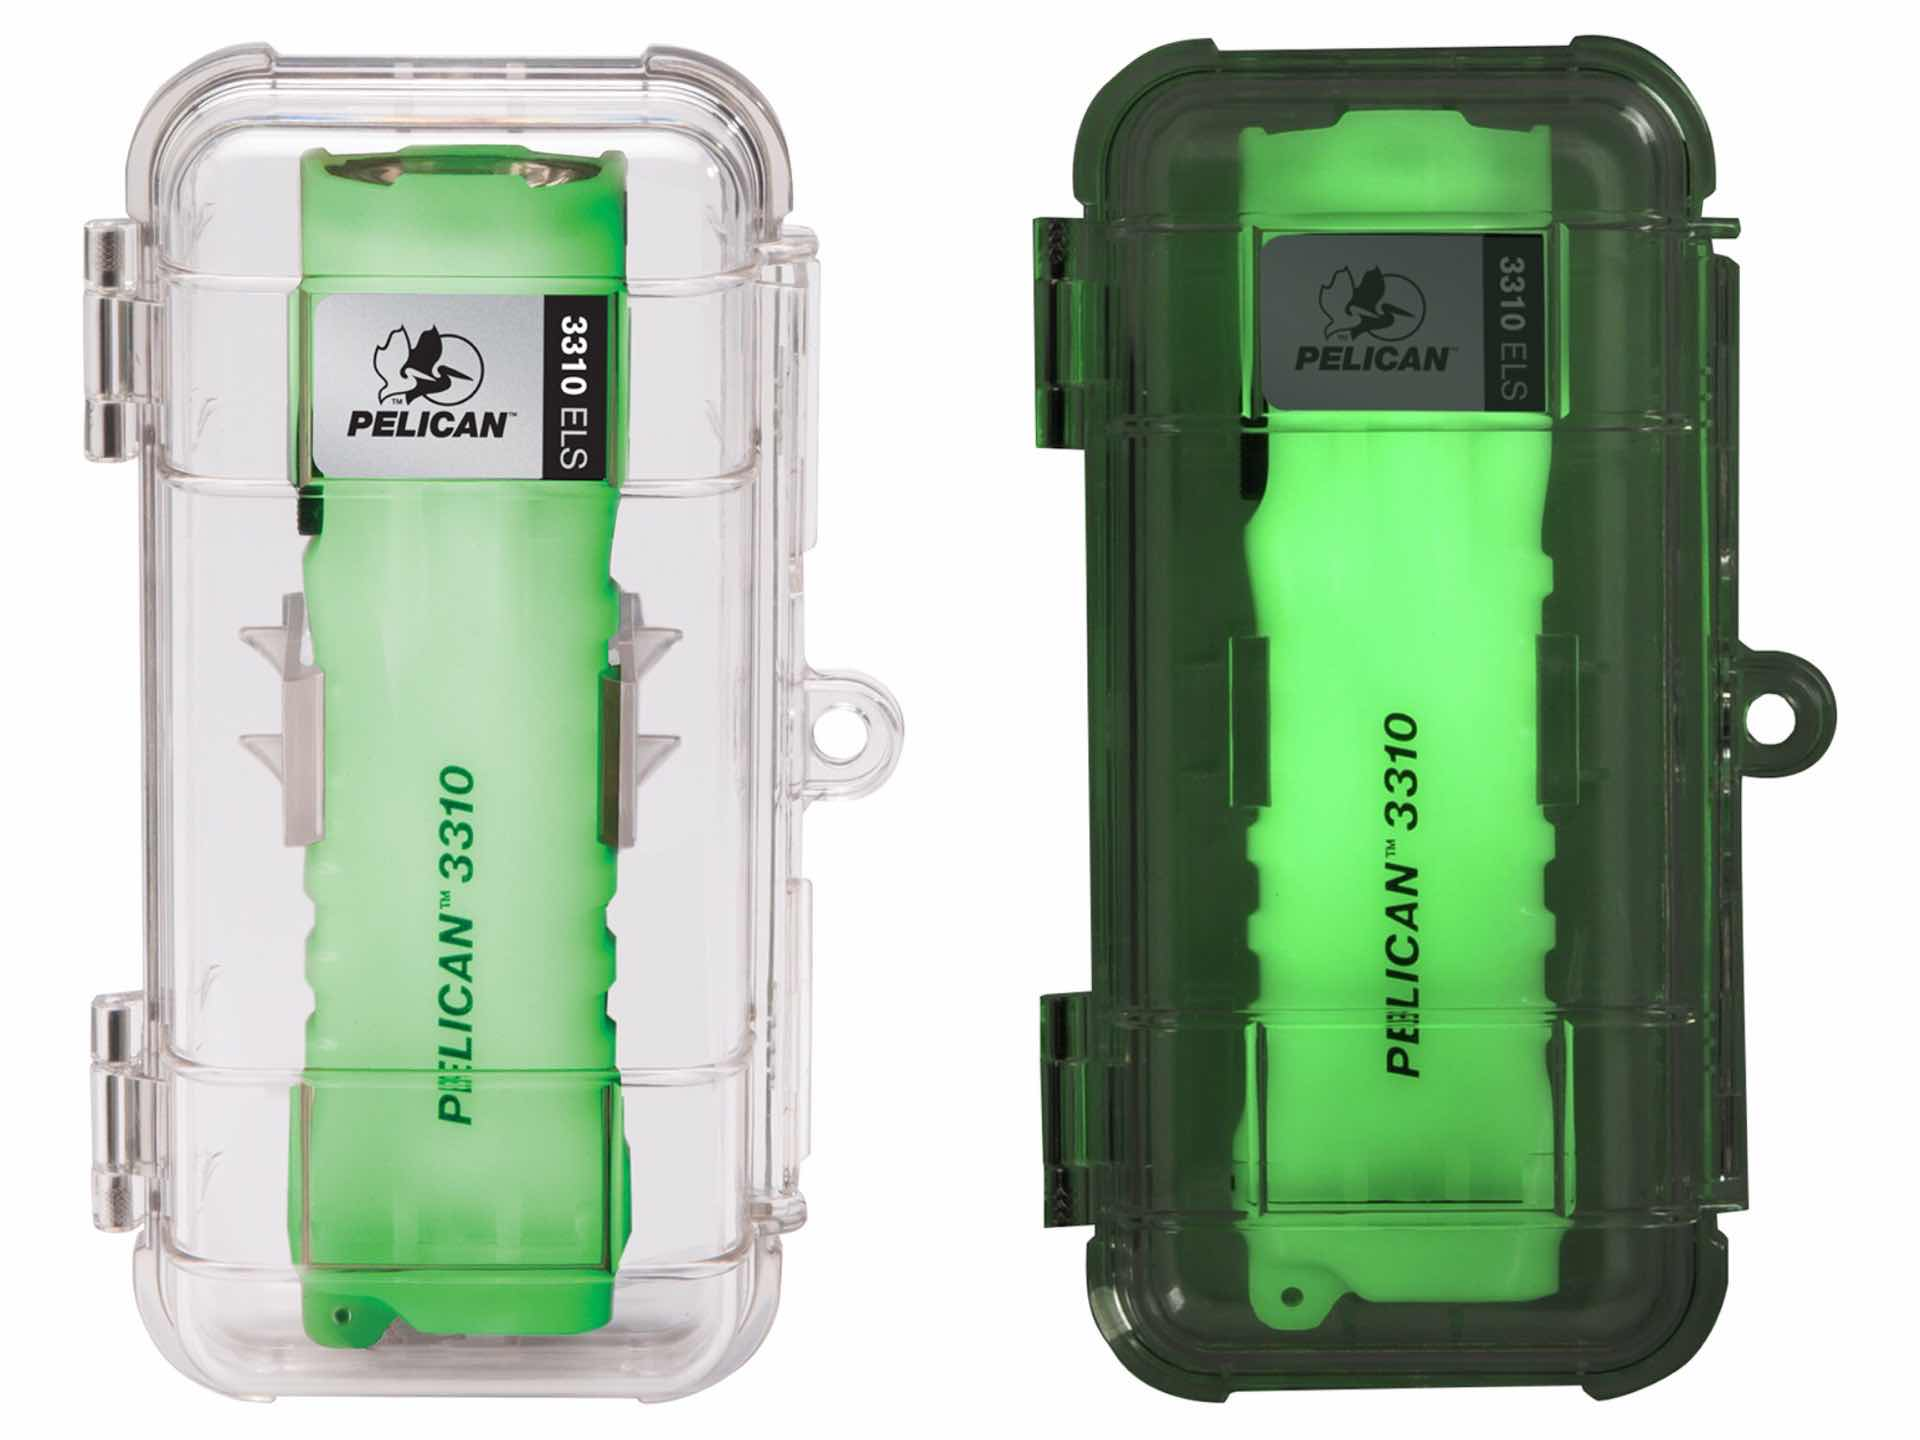 pelican-3310-emergency-flashlight